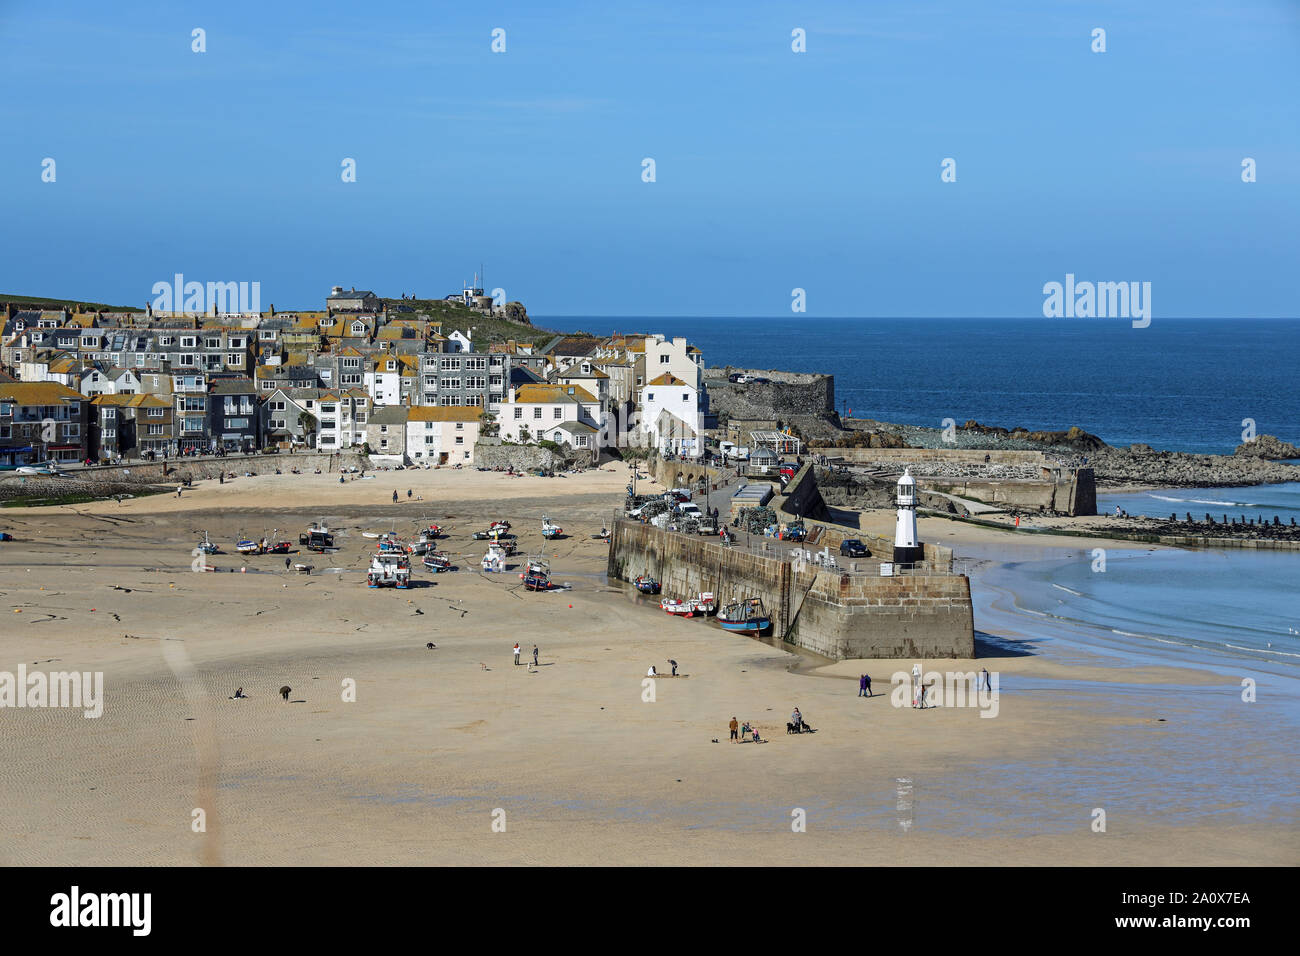 Visitors and residents walk along the beach at St Ives when the tide is out Stock Photo